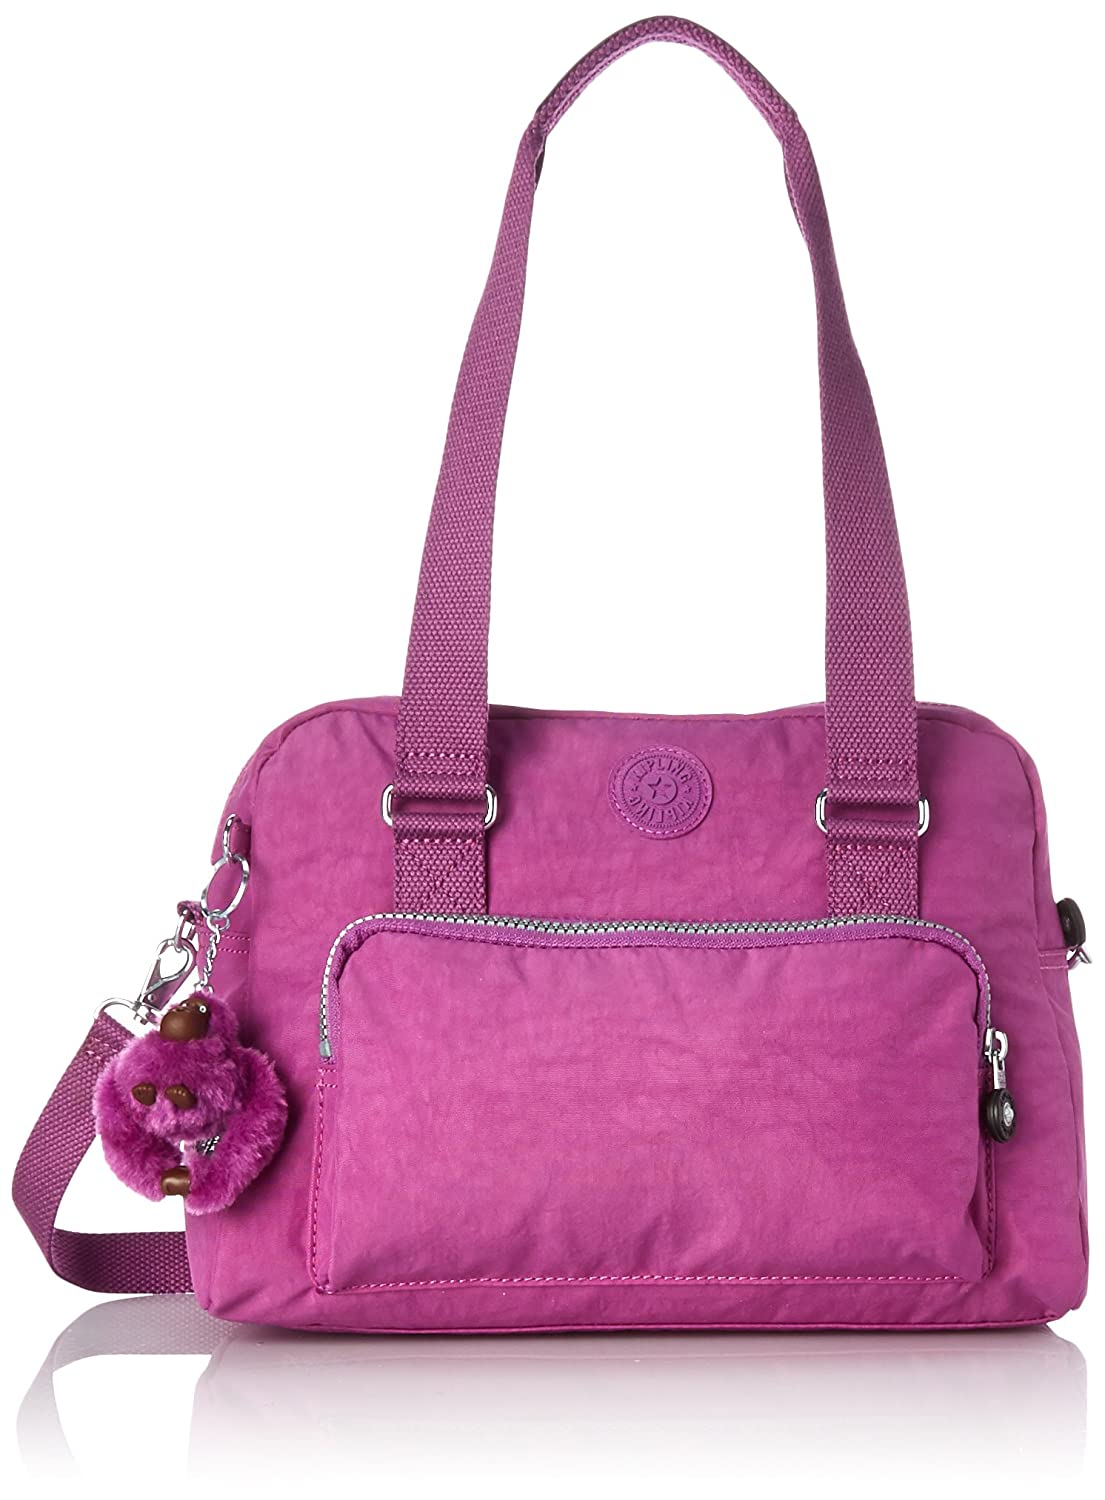 Kipling ユニセックスアダルト B00OI98H0E Purple Q One Size